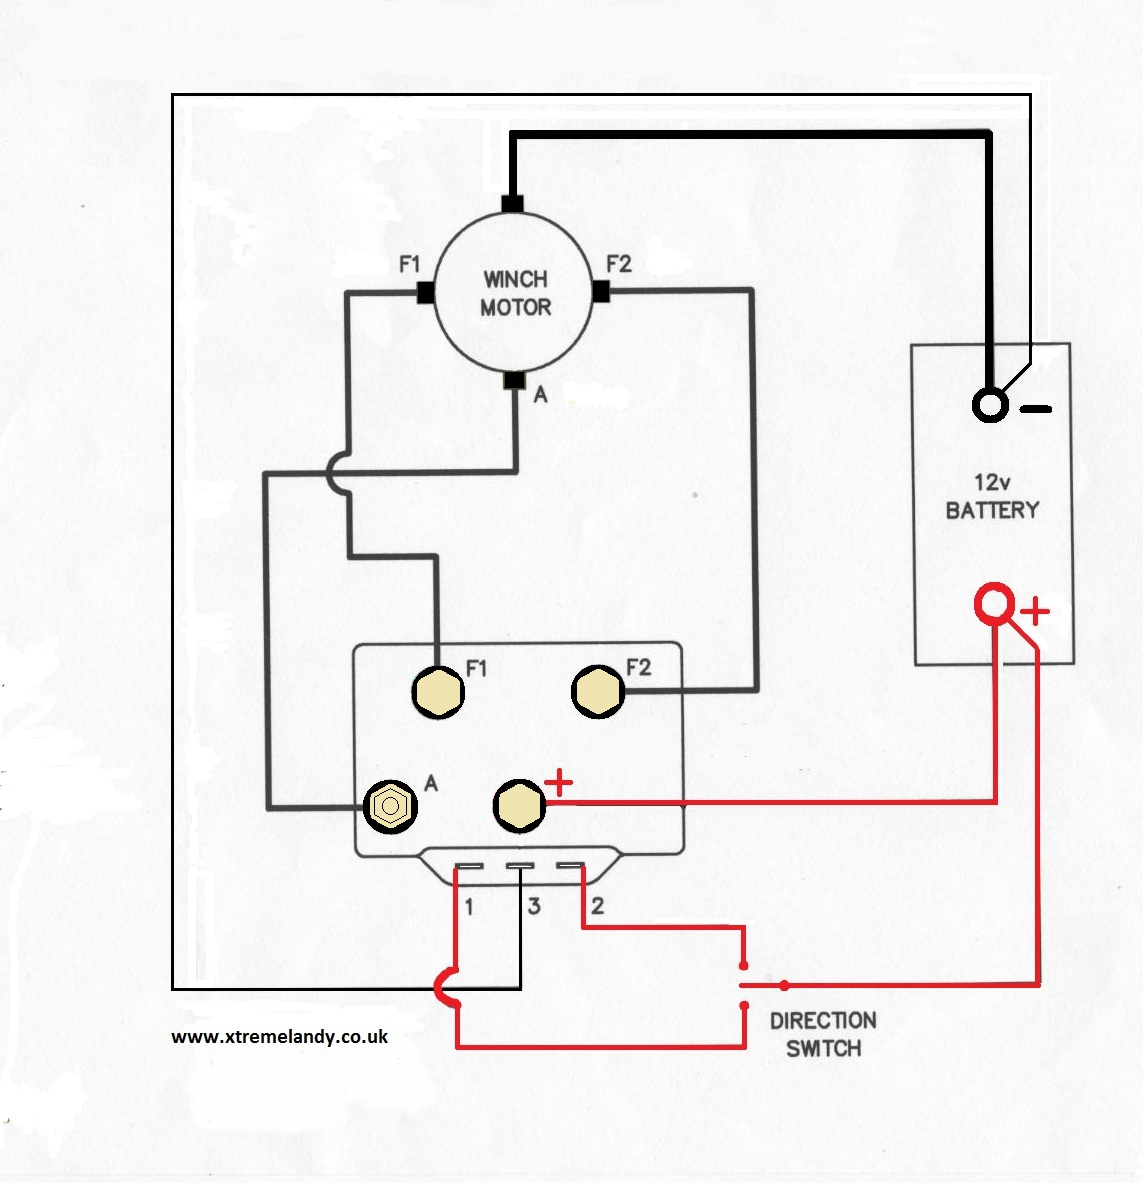 albright wiring diagram image pv4500 wiring diagram winchserviceparts readingrat net winchmax wiring diagram at n-0.co